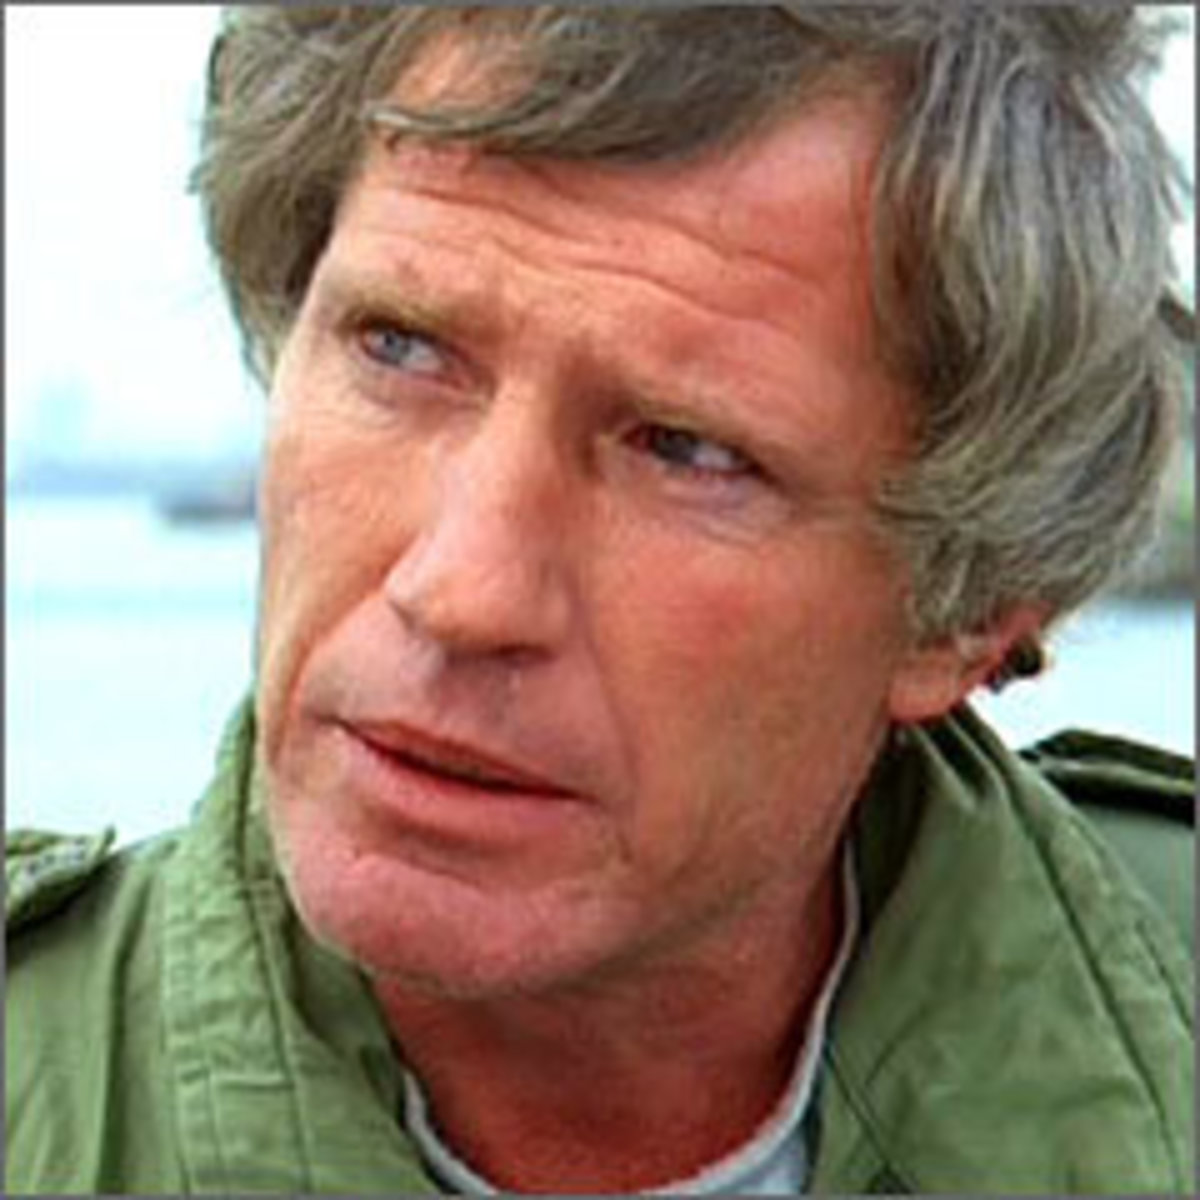 Chris Connelly appears in two episodes of Airwolf, playing Stringfellow Hawke's bother Saint John